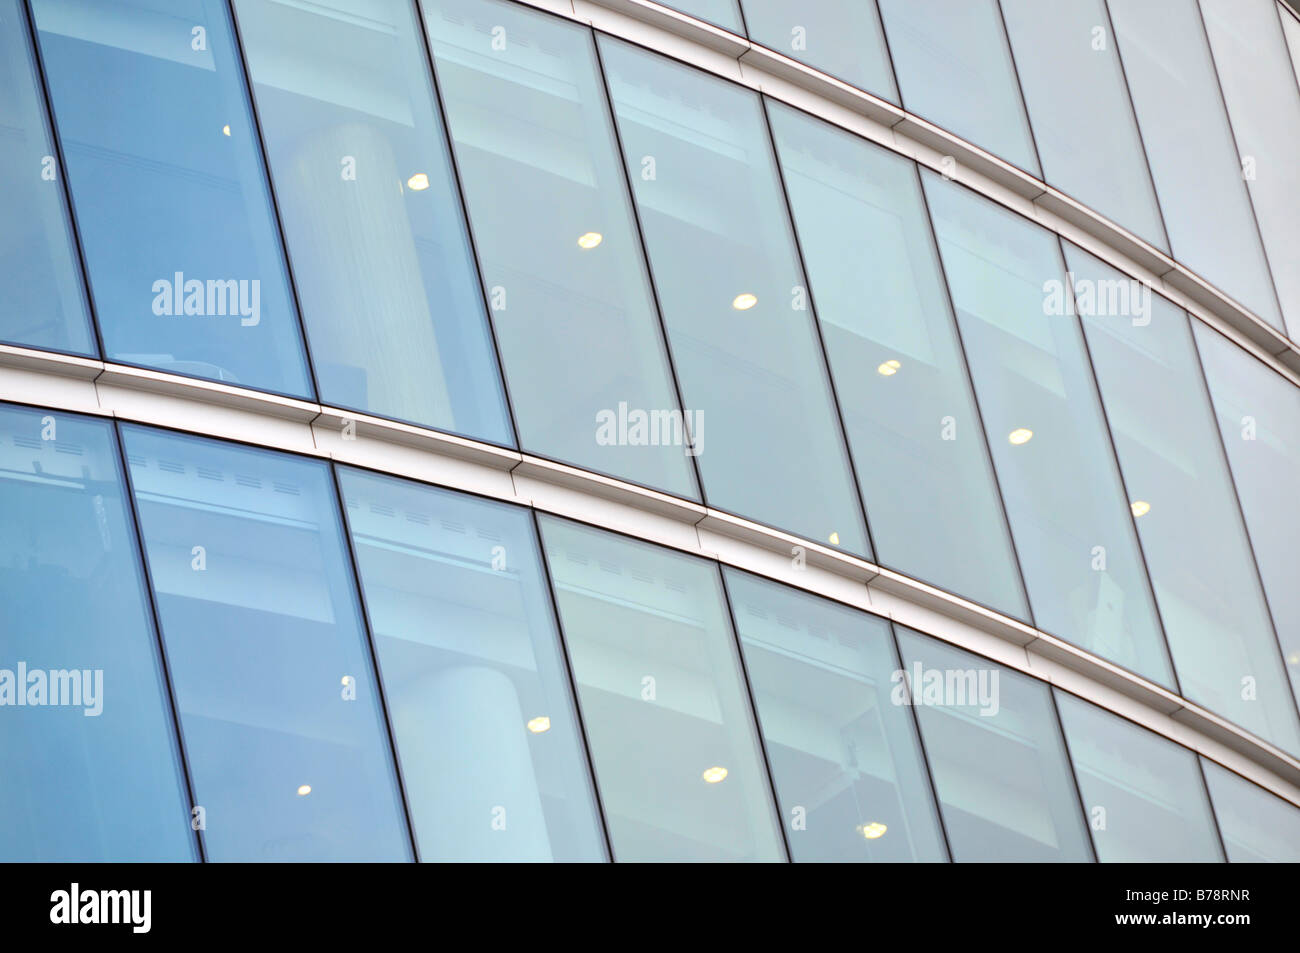 glass panels of a building - Stock Image